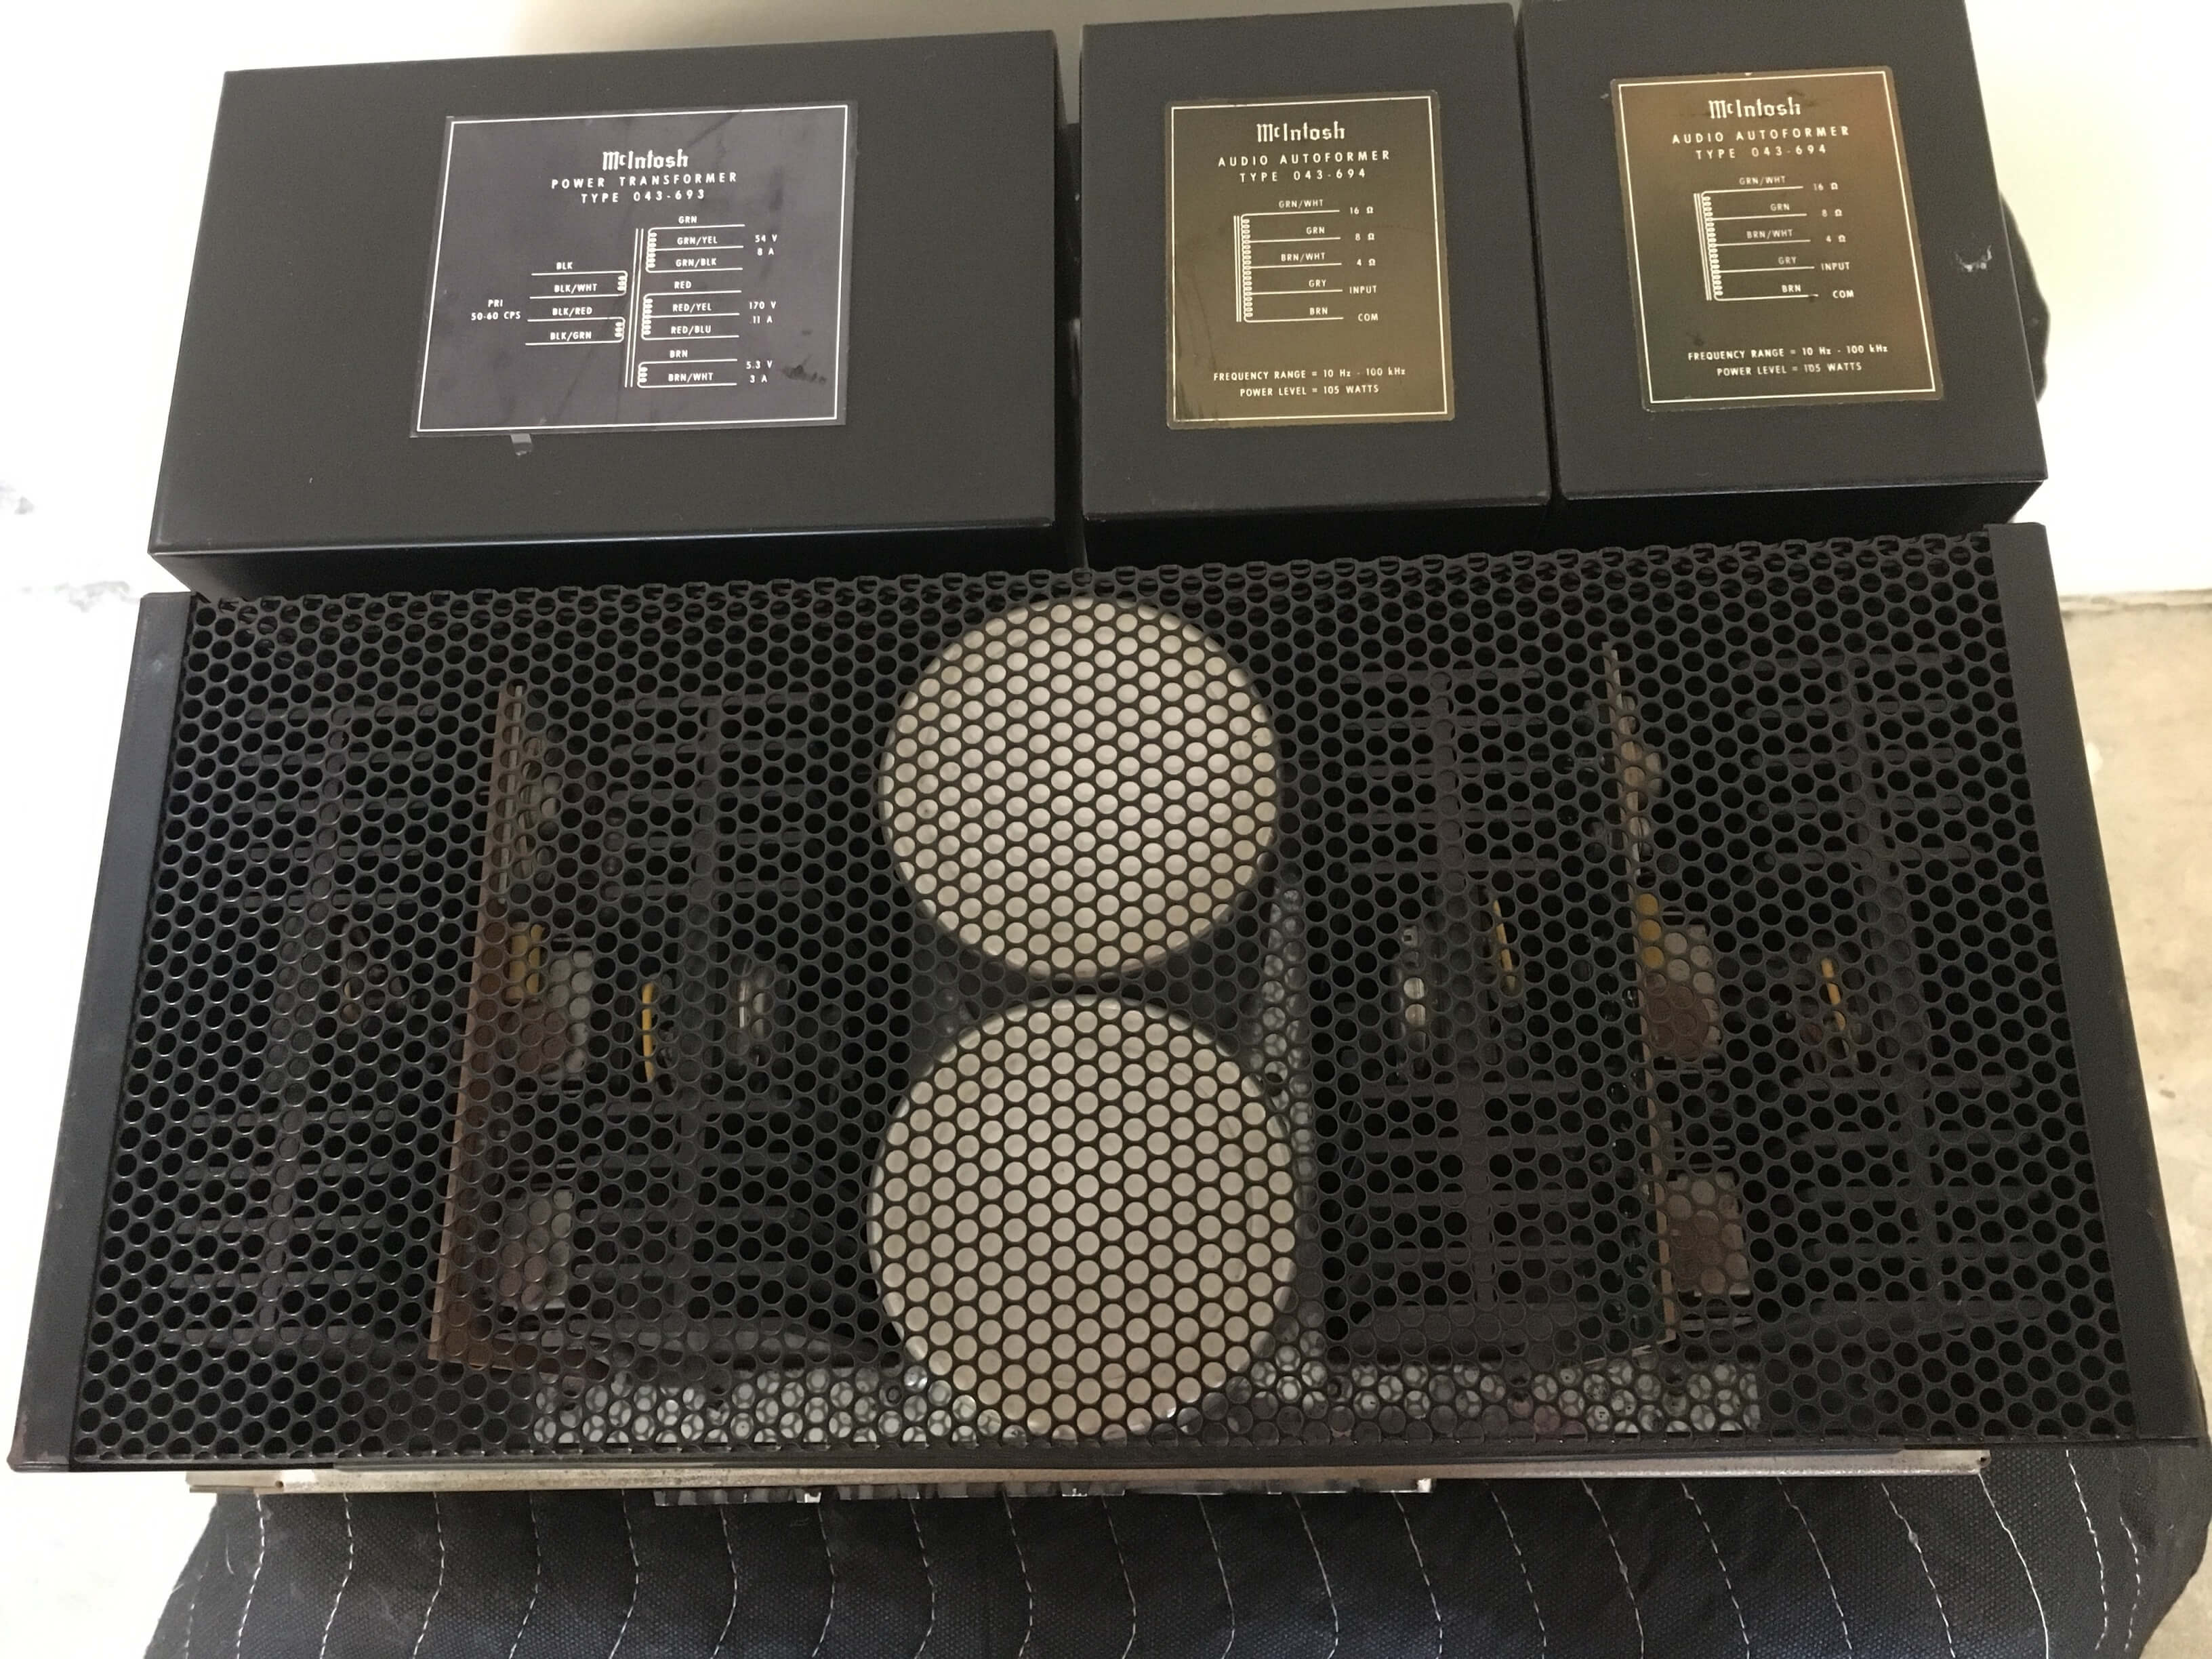 McIntosh MC2100 stereo amplifier